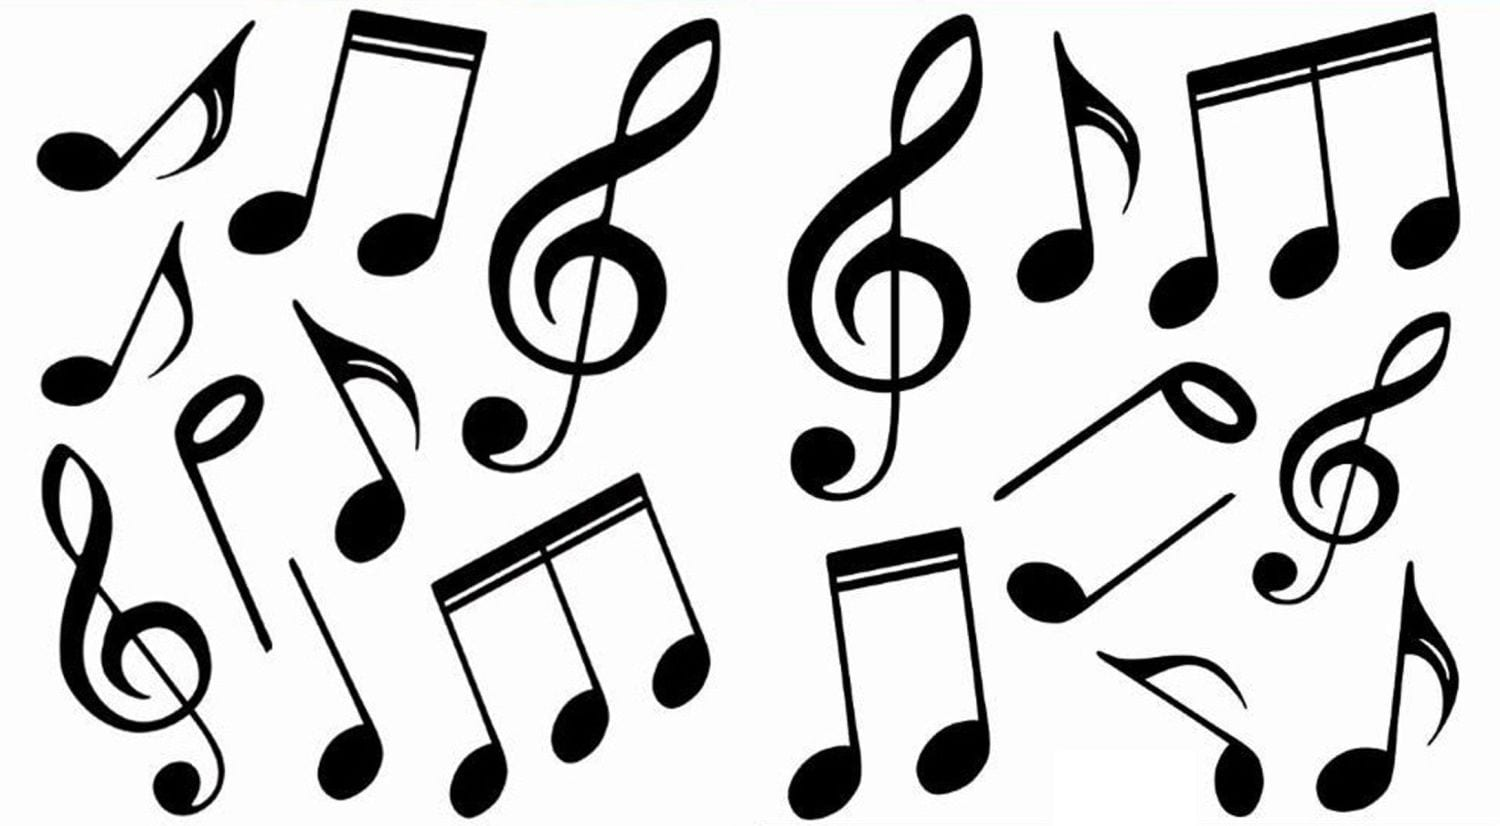 Free Pictures Of Music Notes And Symbols, Download Free Clip Art